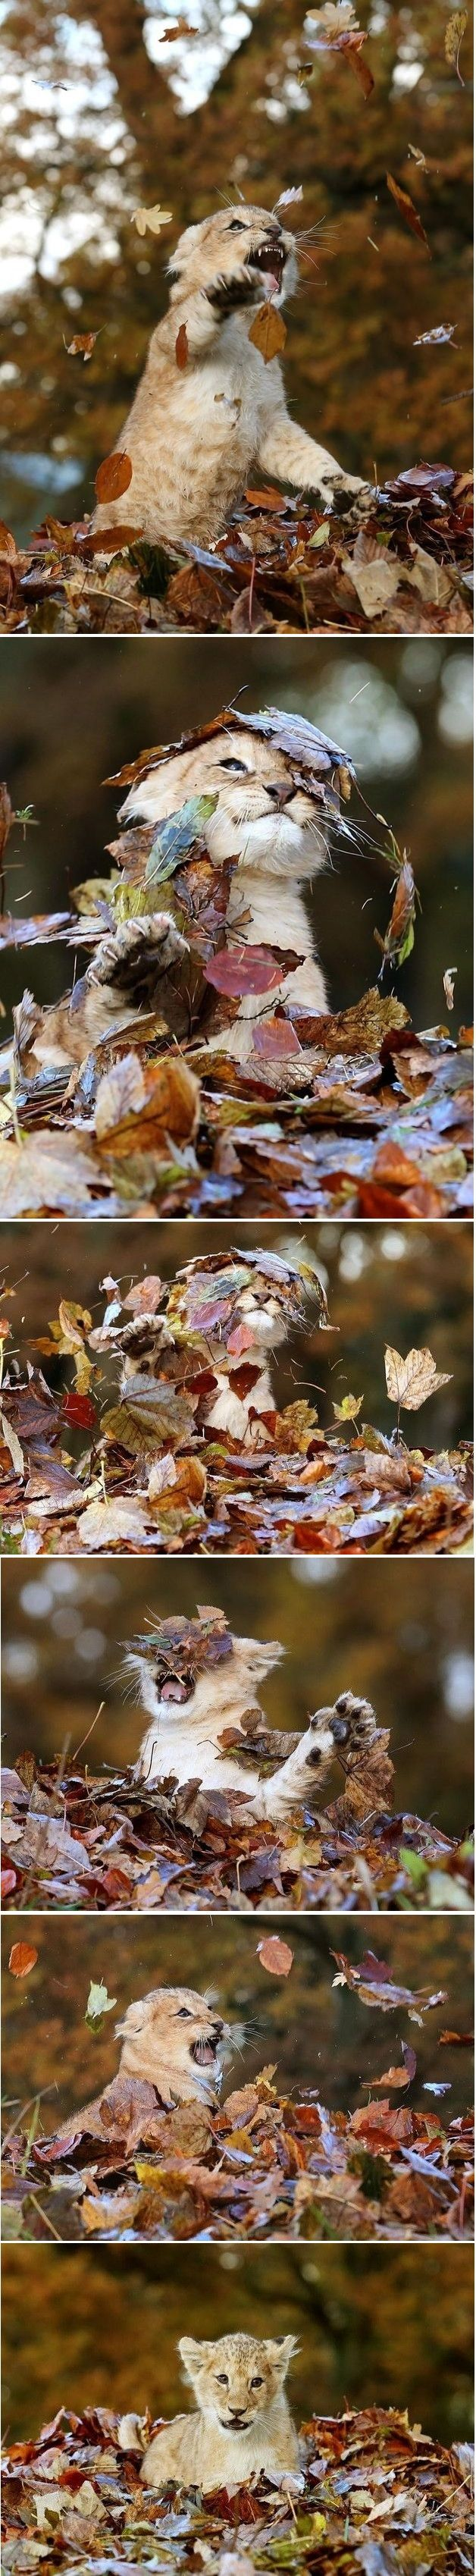 11 week old lion cub playing in leaves. INFO from previous pinner.....v